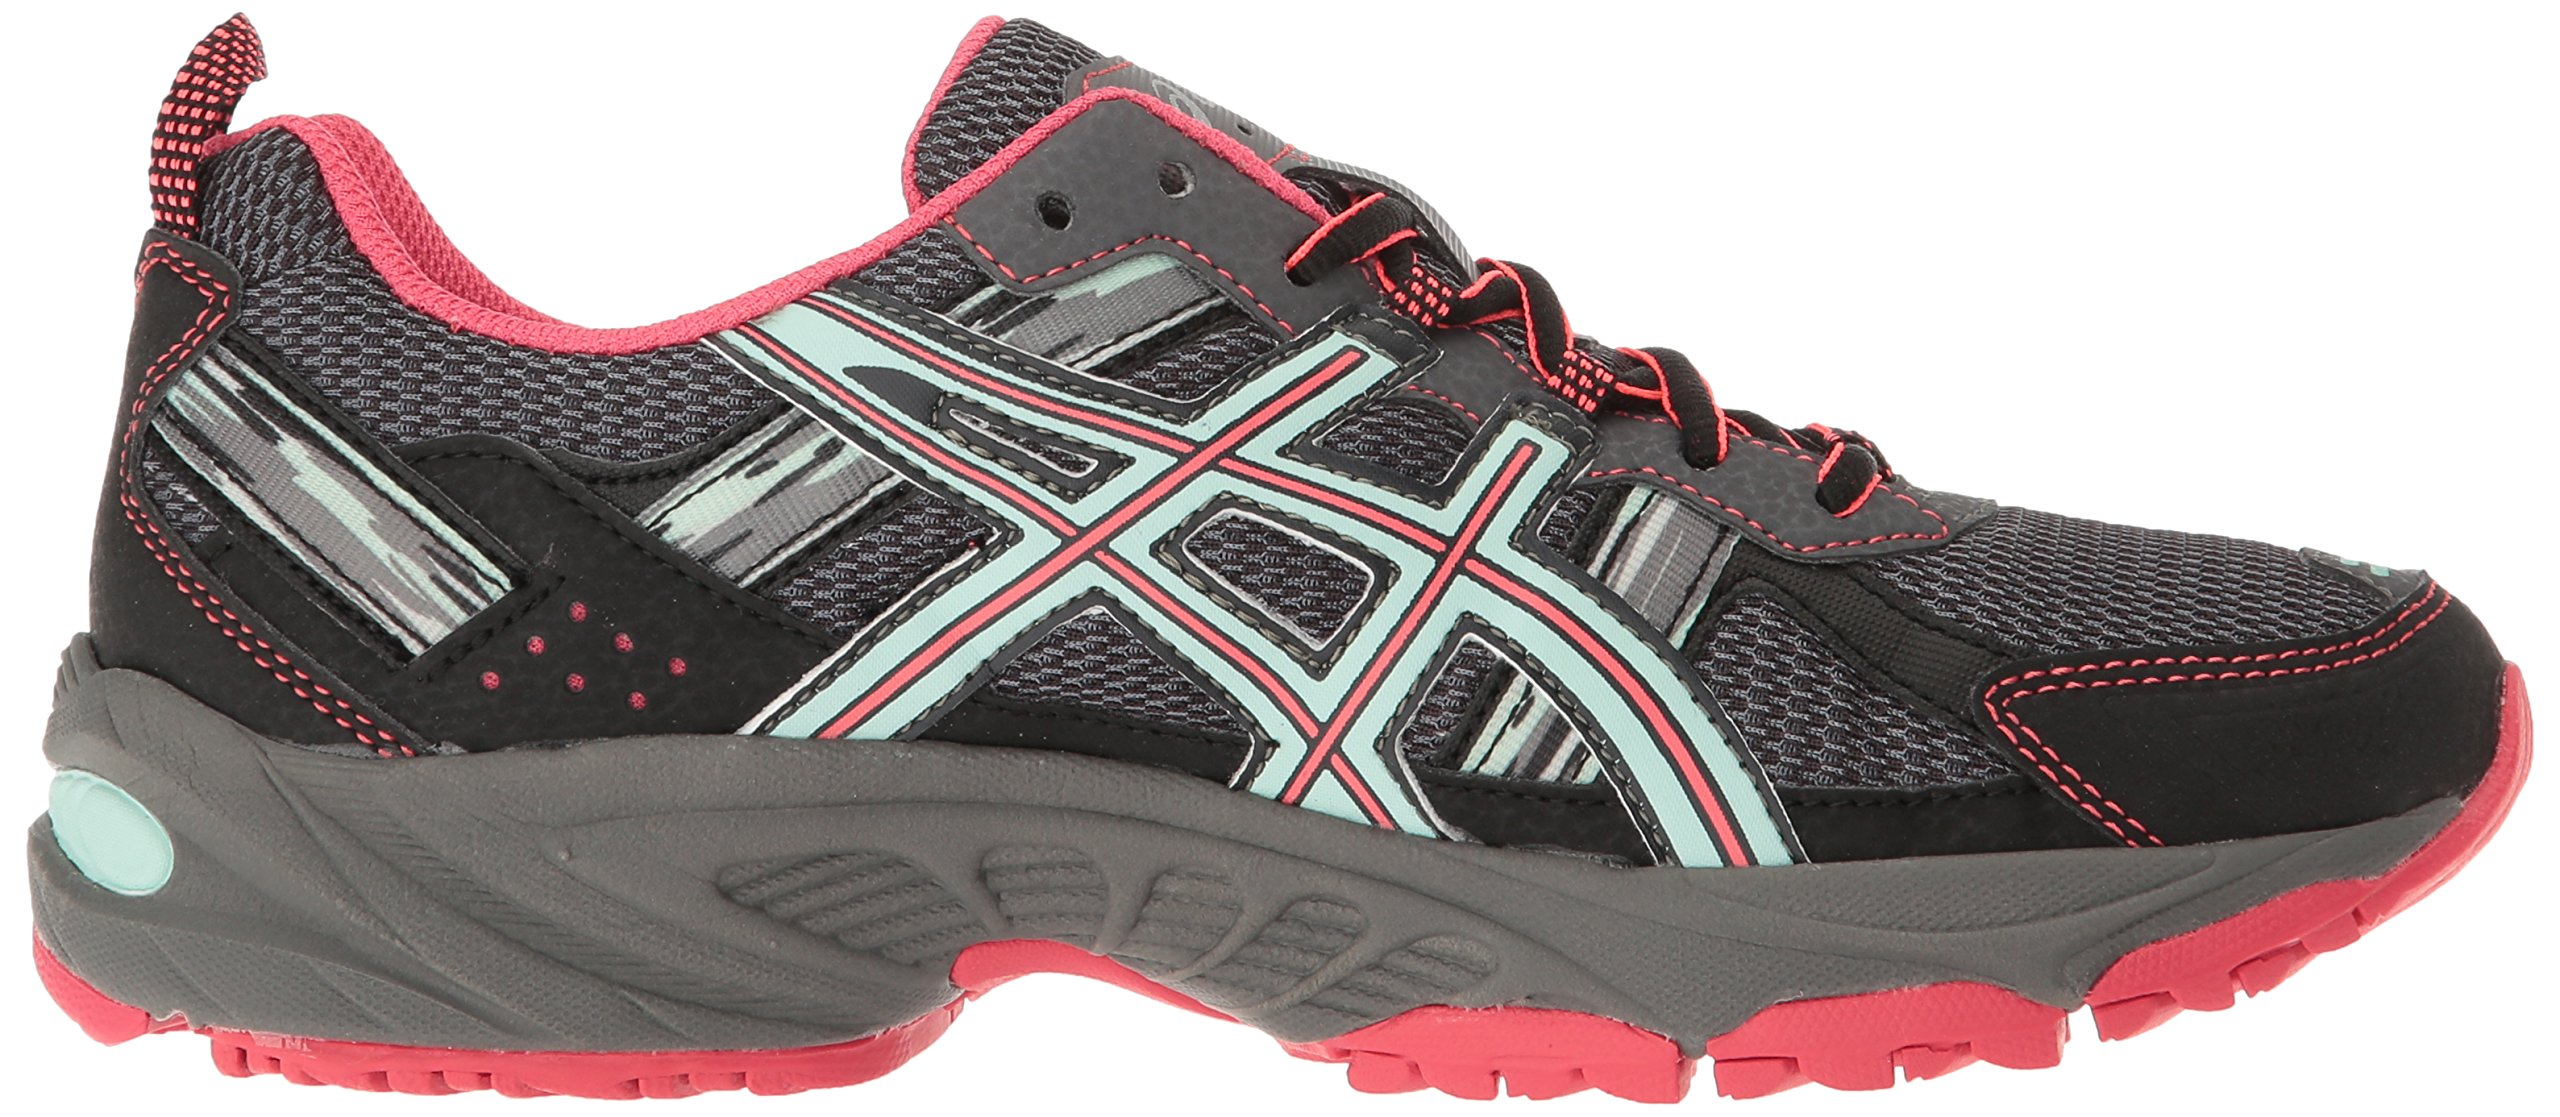 ASICS Women's Gel-Venture 5 Trail Runner, Carbon/Diva Pink/Bay, 9 M US by ASICS (Image #7)